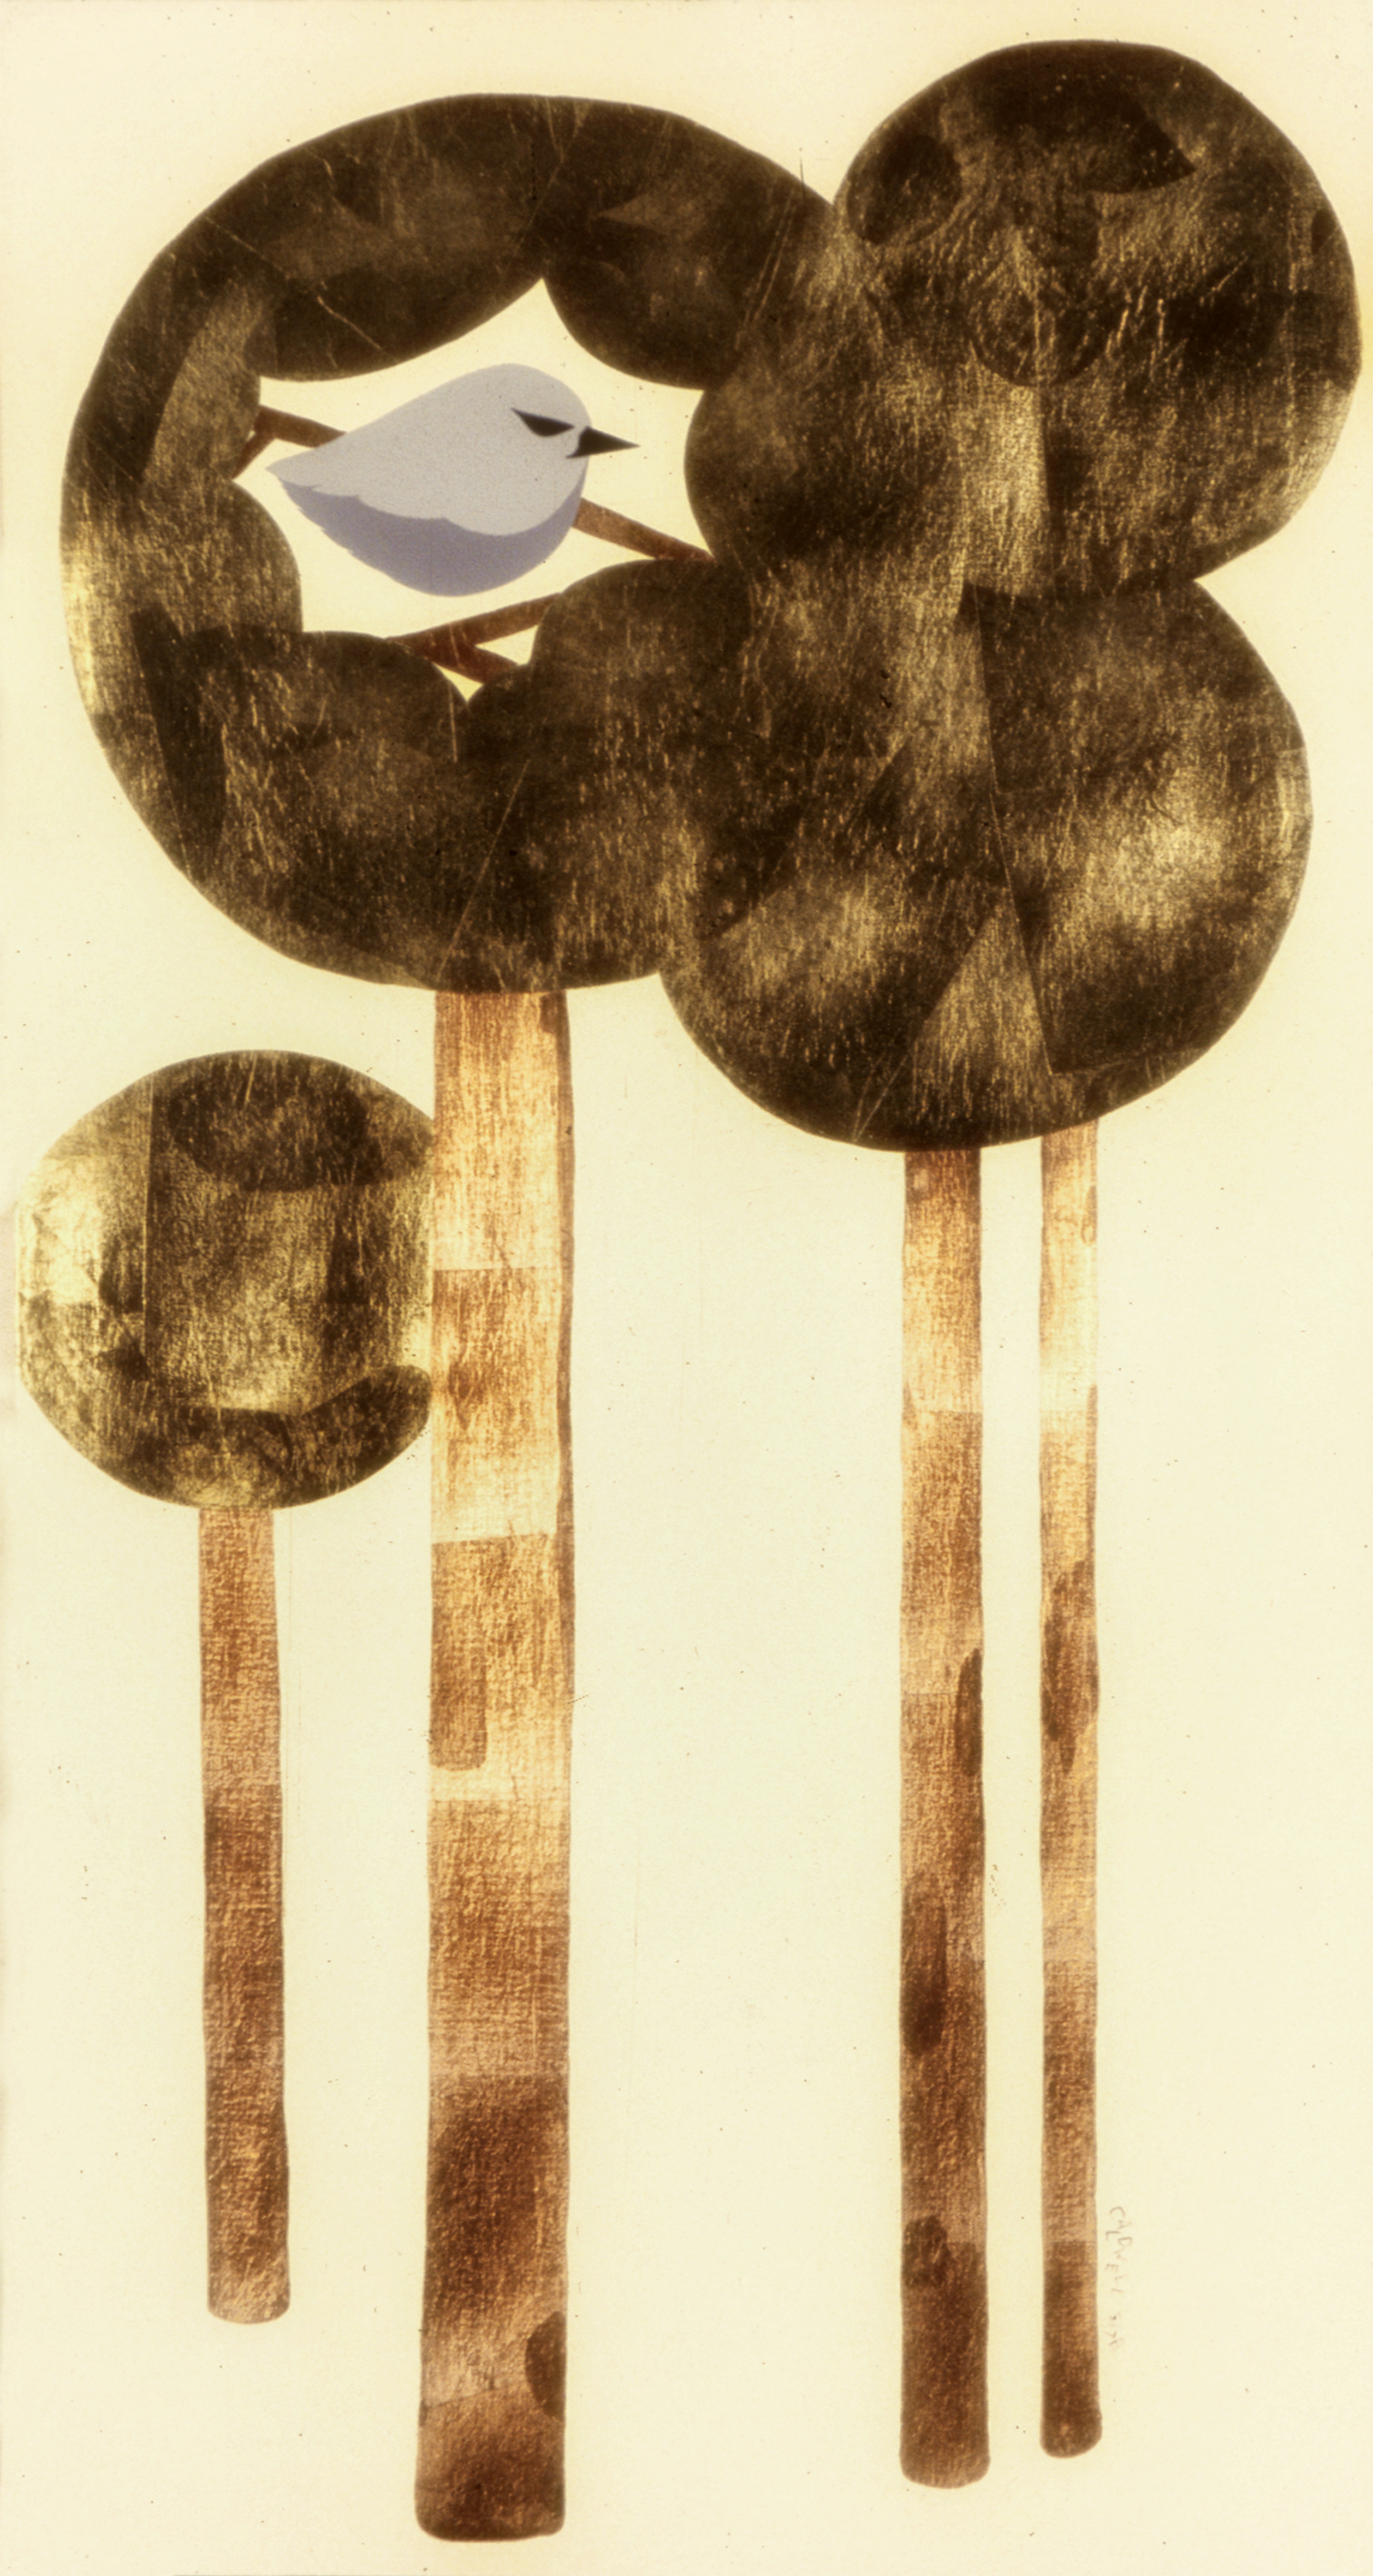 Songbird, 1977, Acrylic and Gold Foil on Canvas, 48 X 24 in.